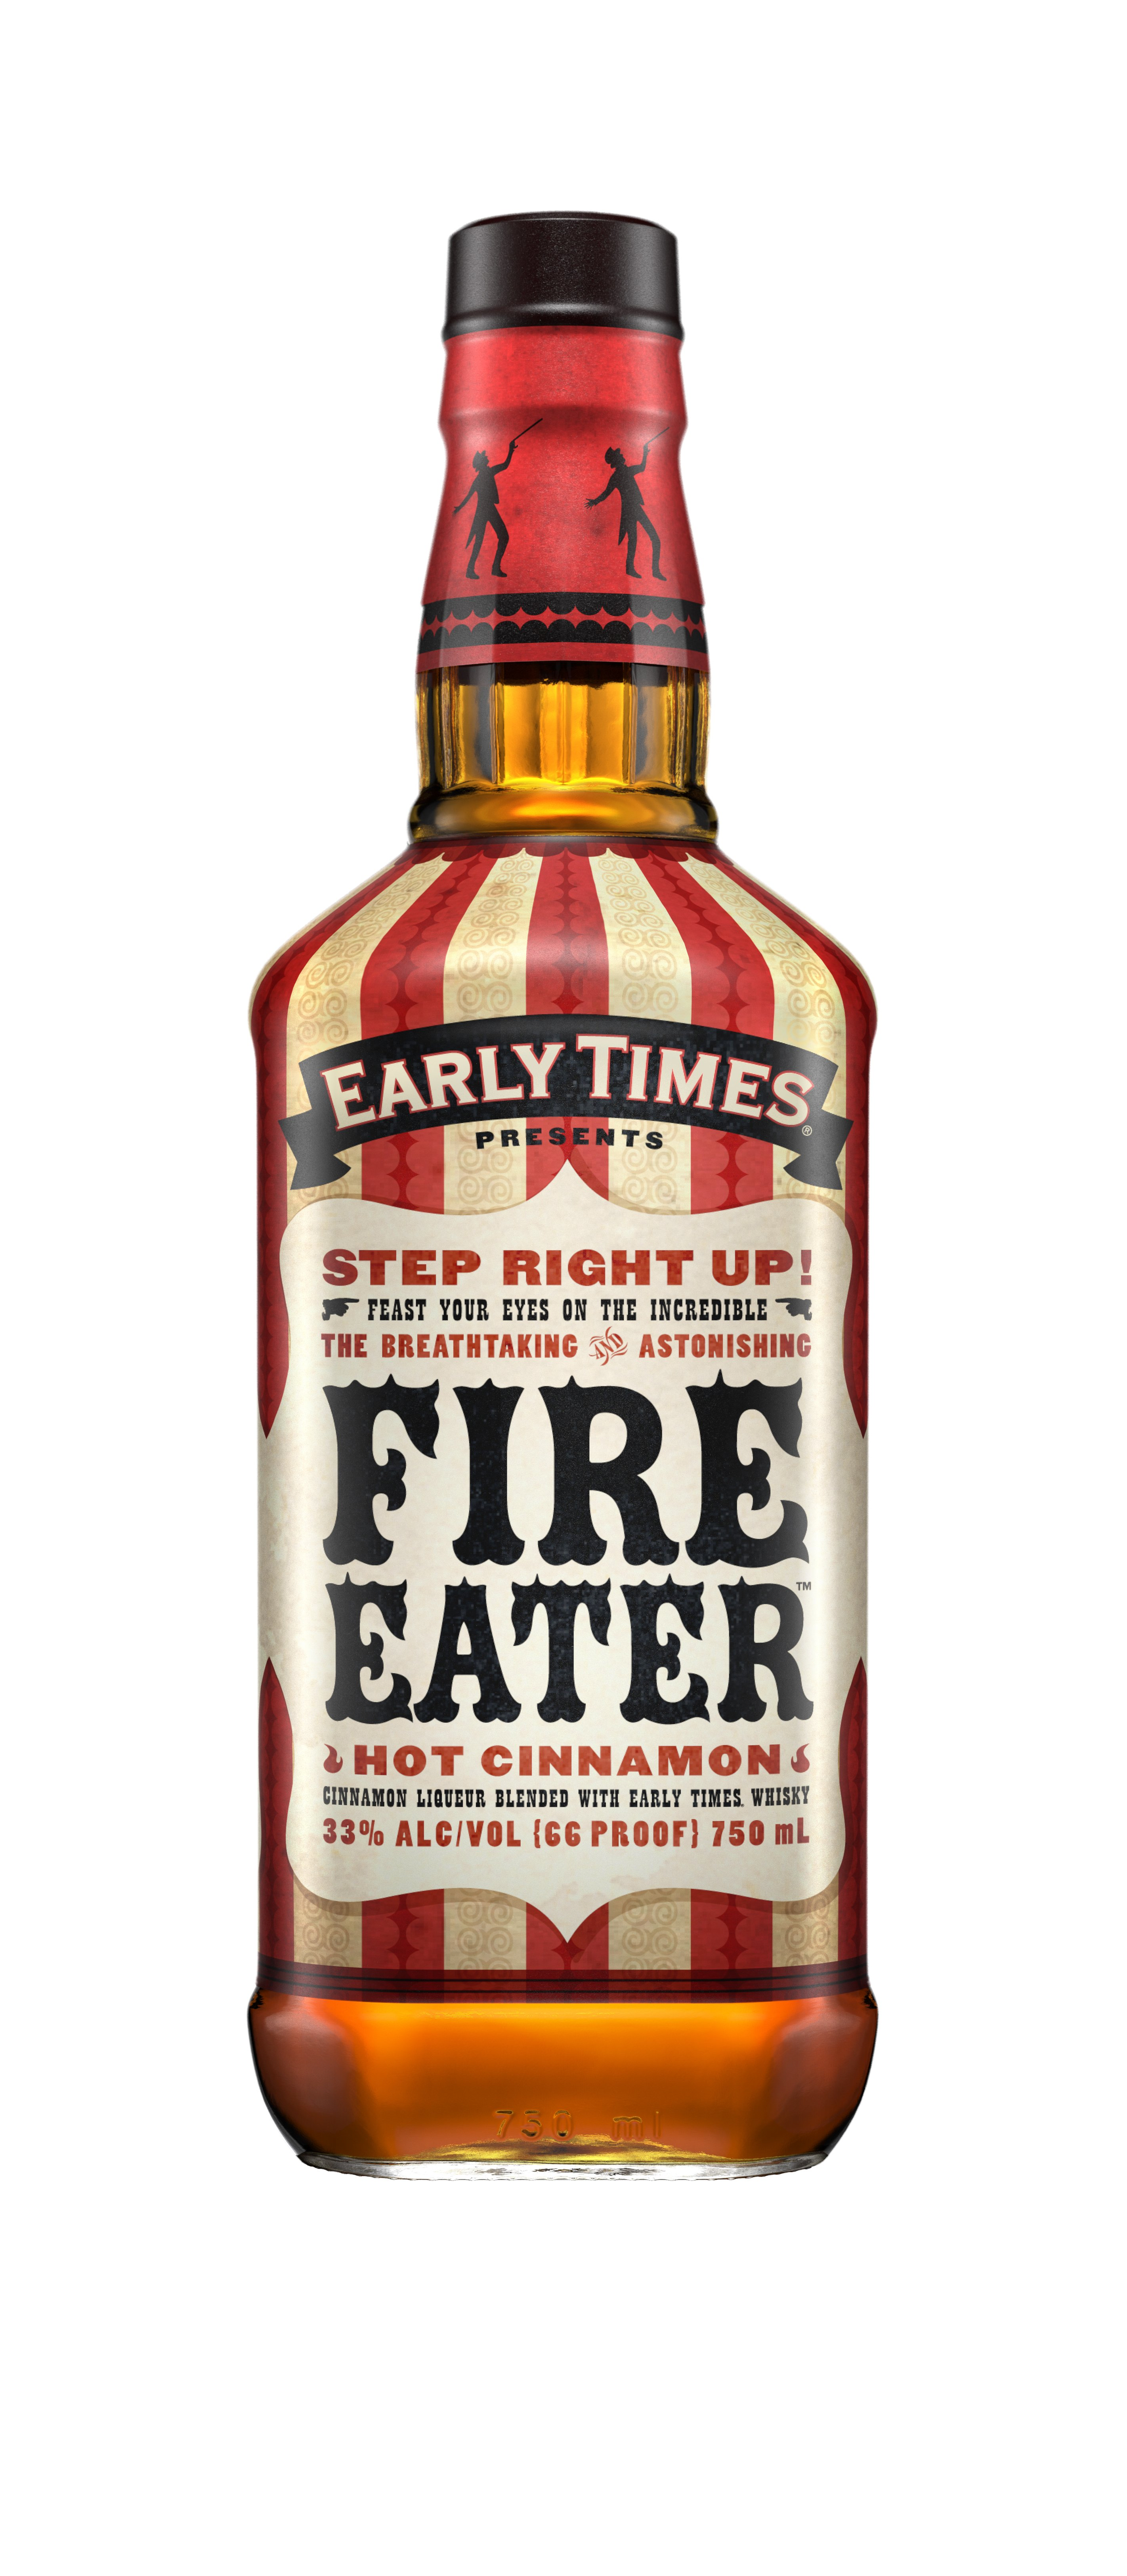 Cinnamon Flavored Whiskey http://www.drinkhacker.com/category/whiskey ...